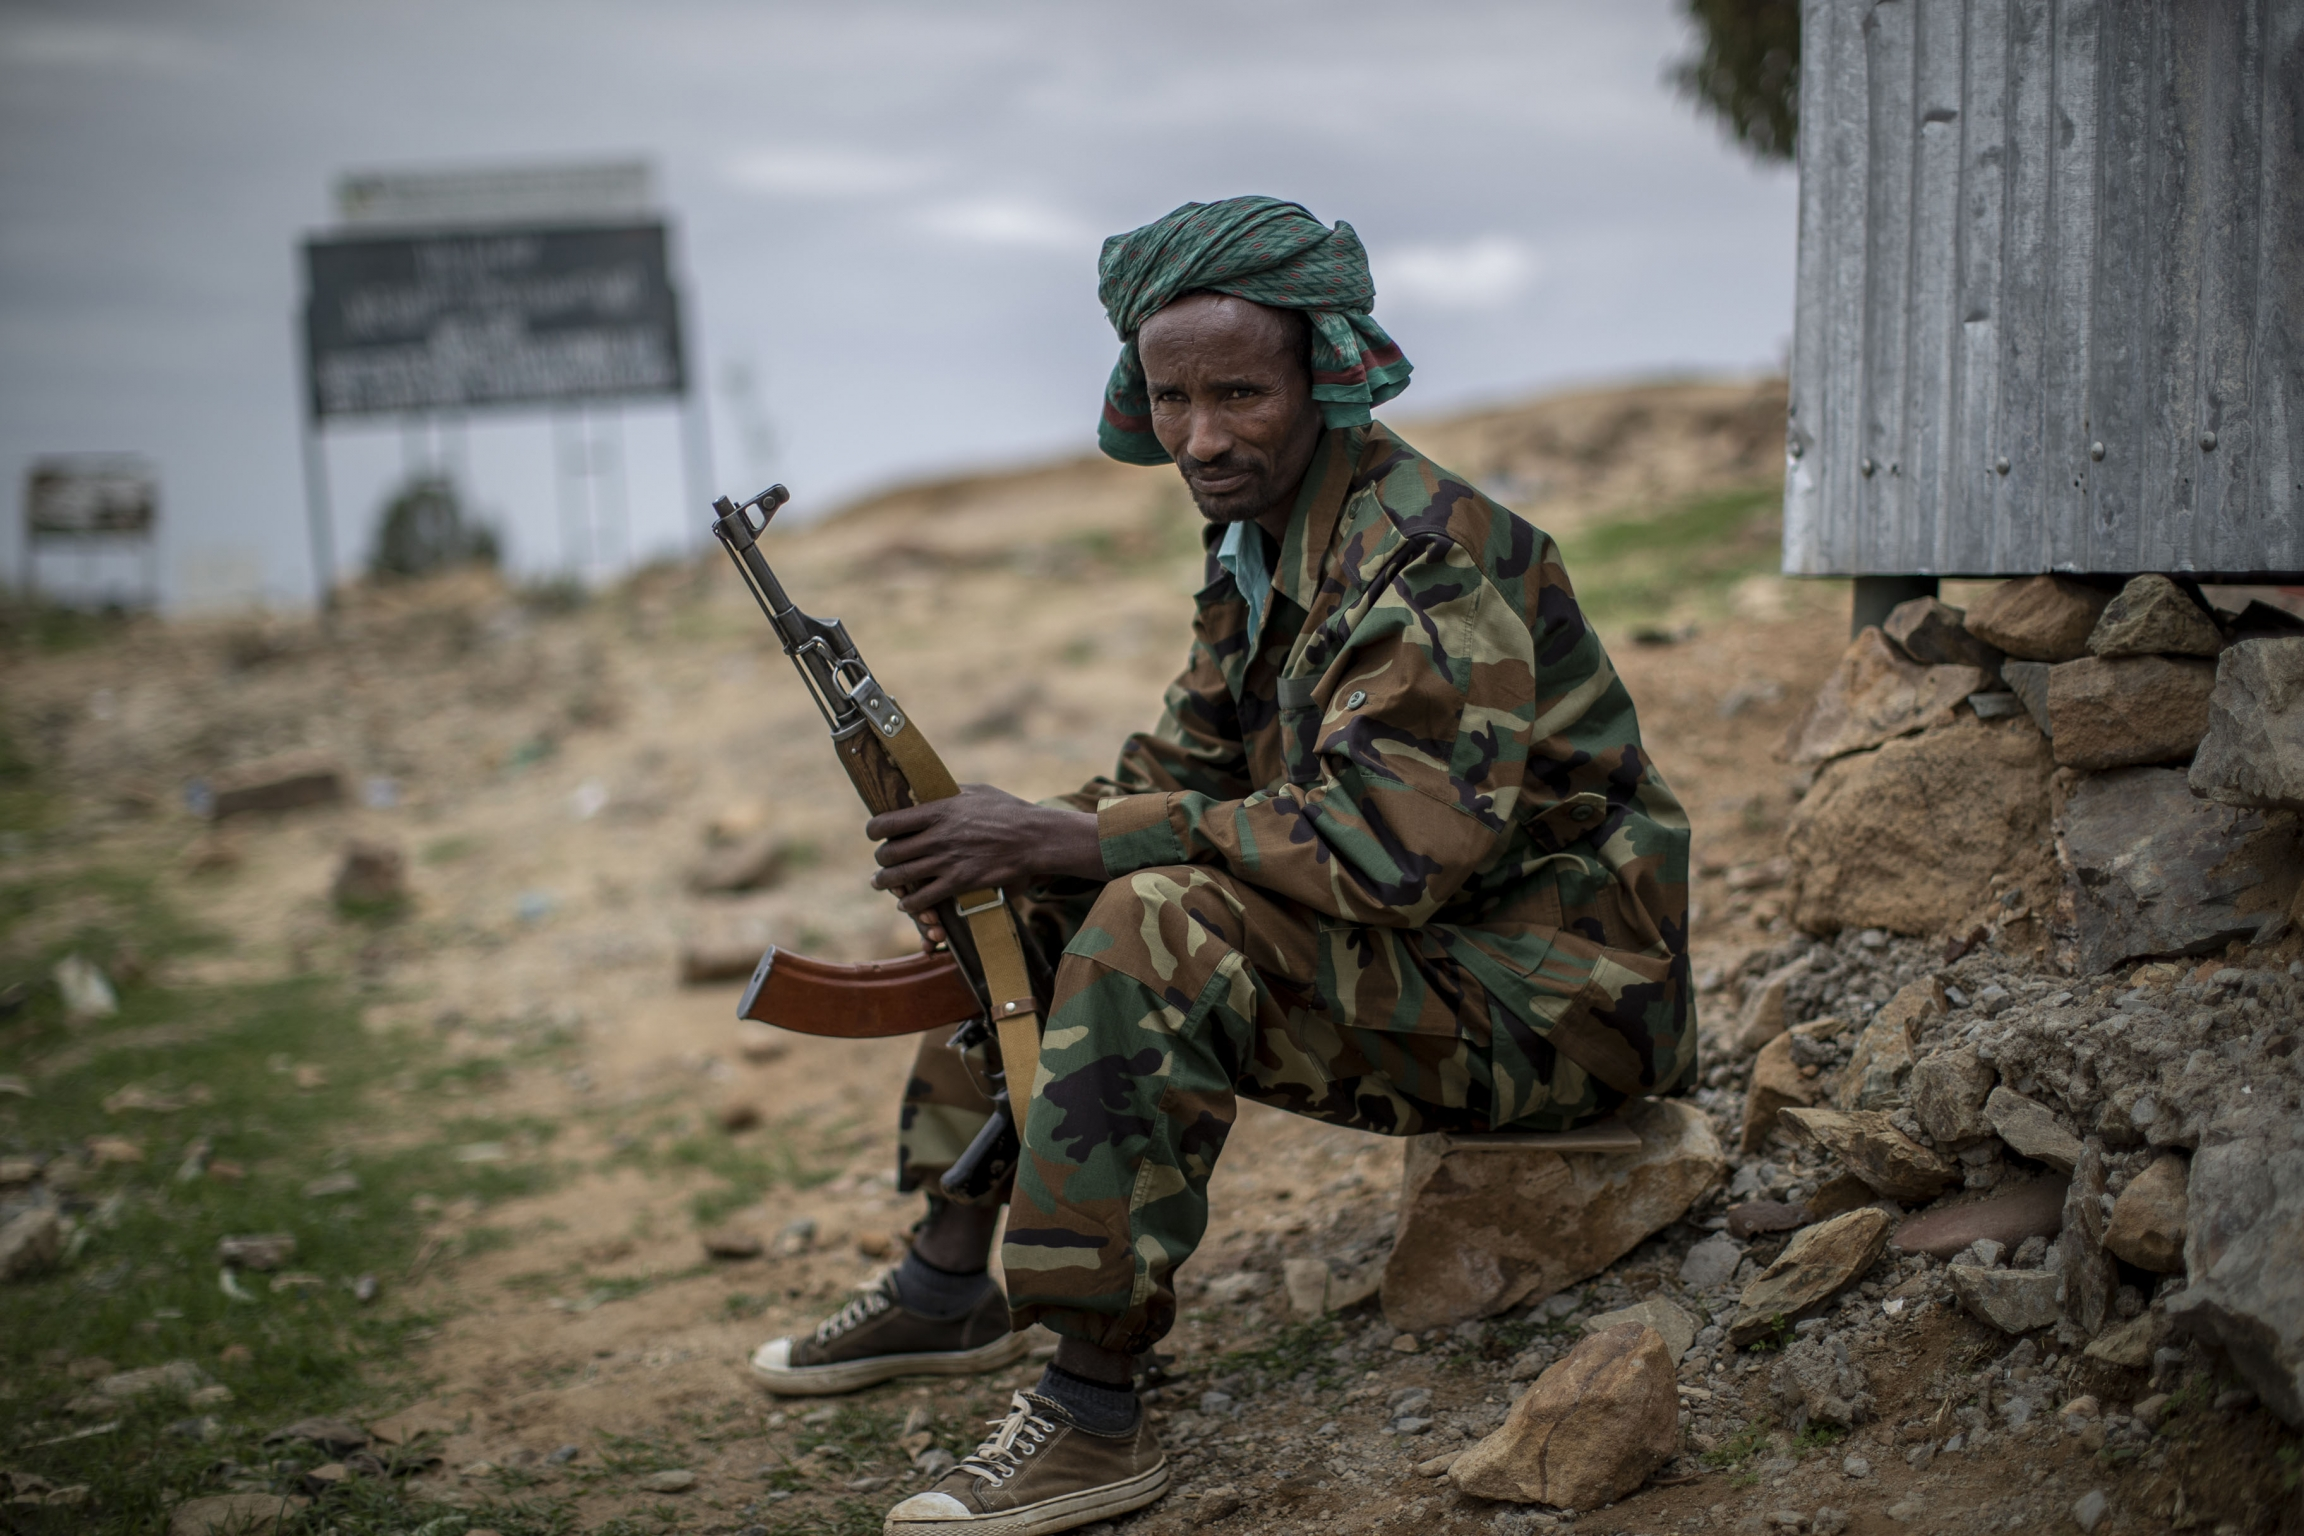 A soldier holds his gun while sitting done.